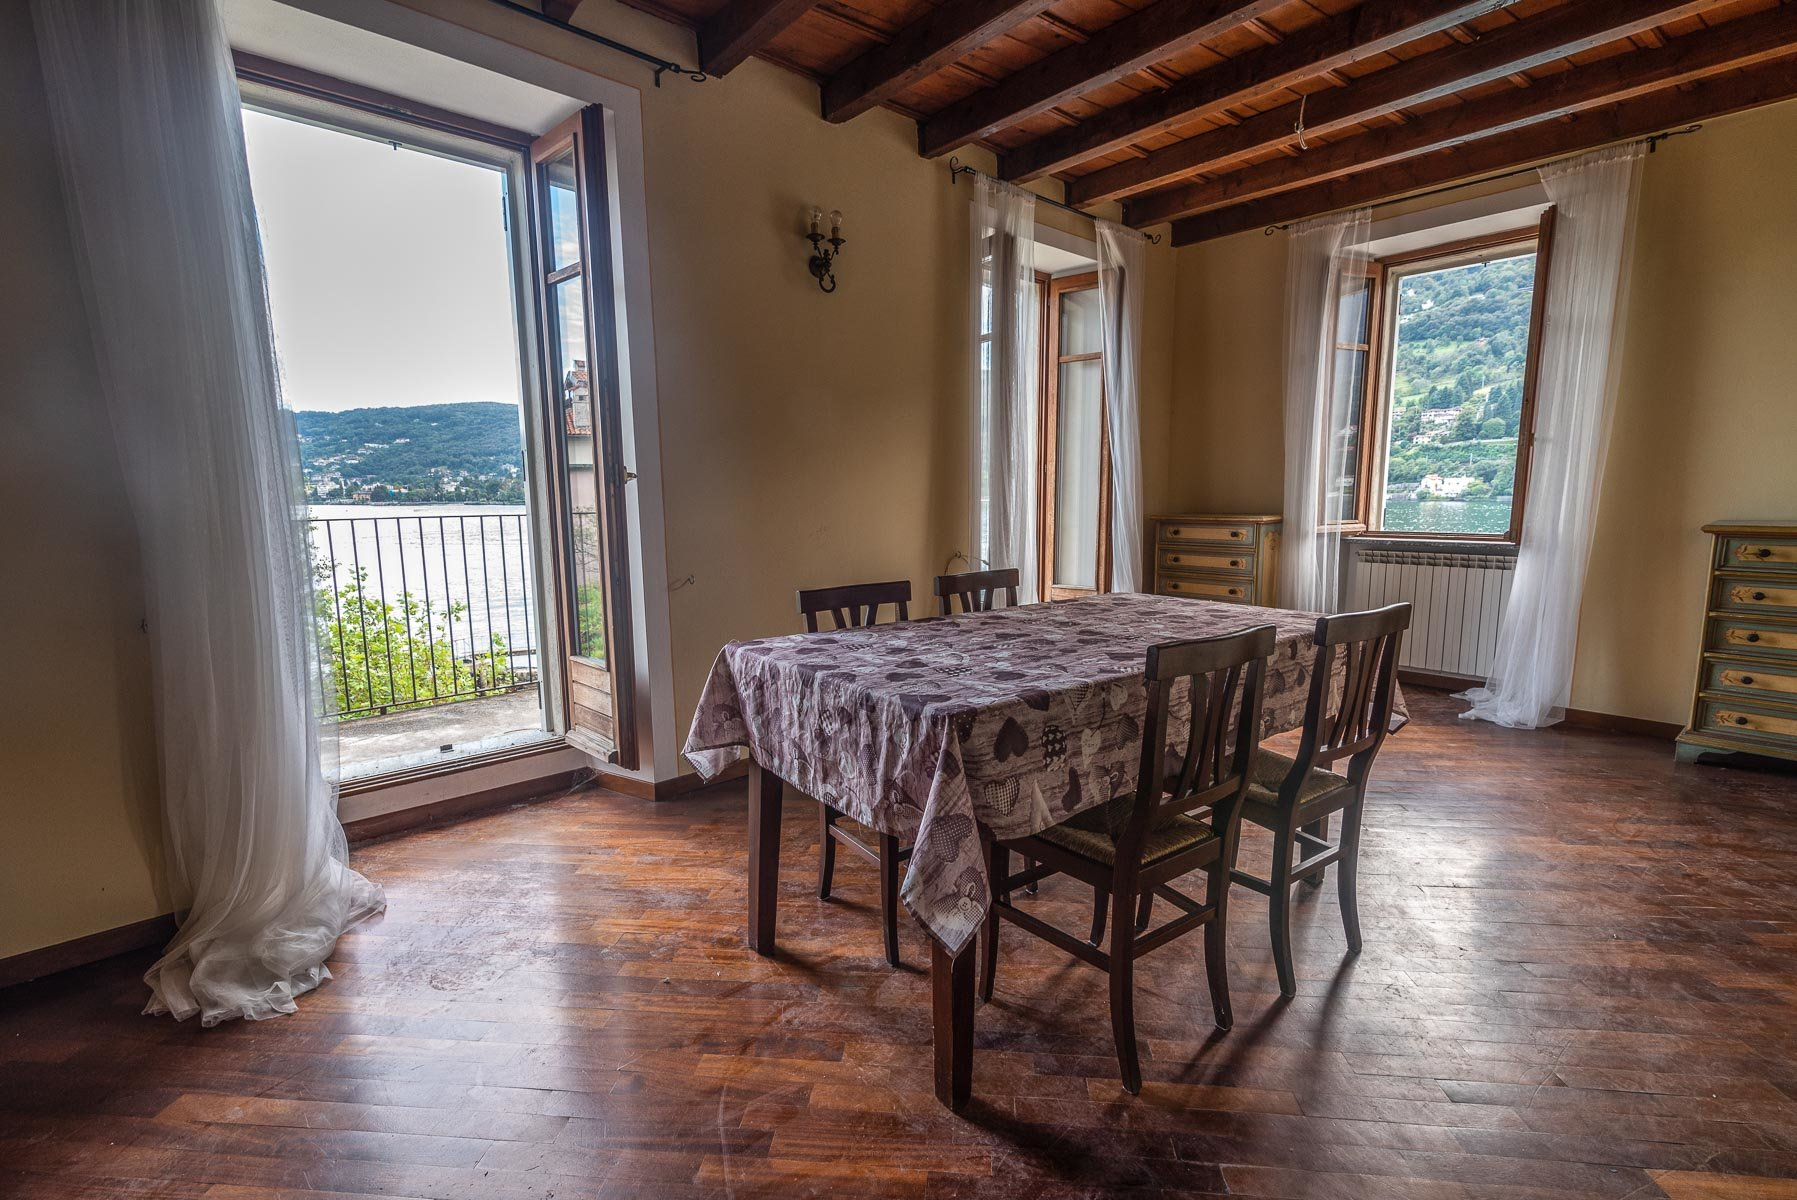 Apartment for sale in Pescatori island,Stresa- dining room with view